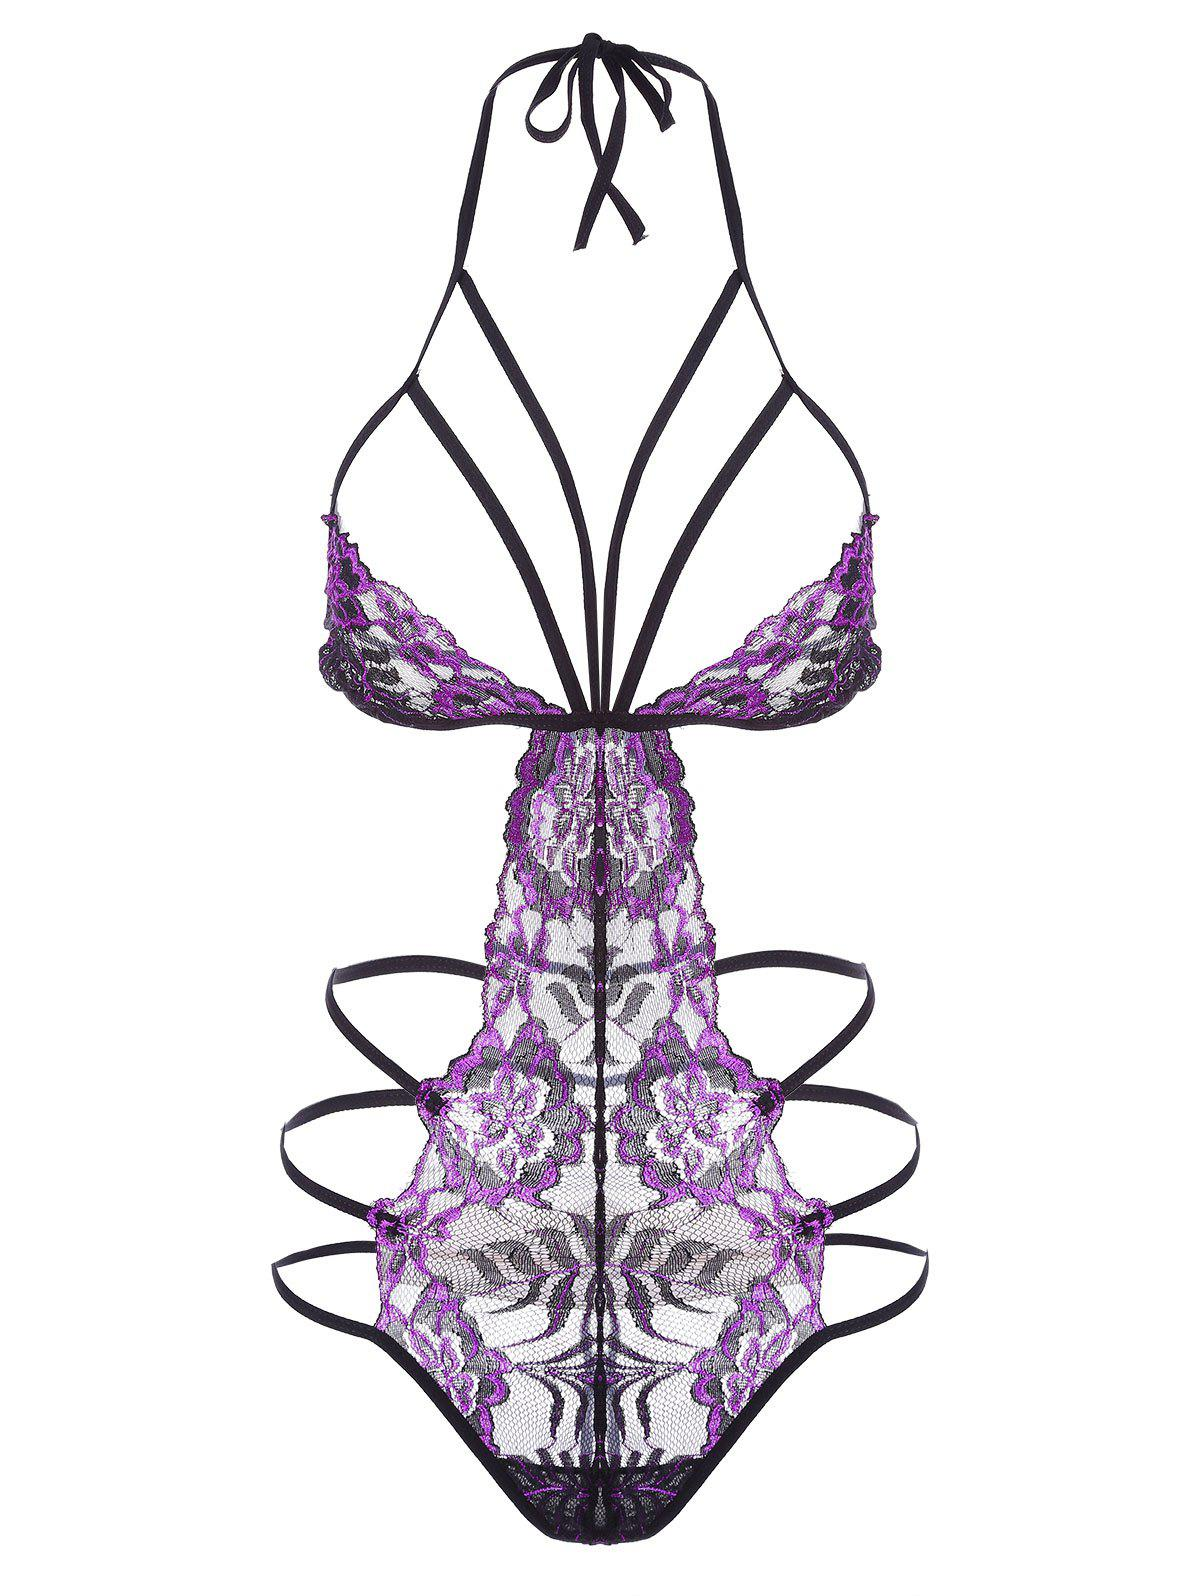 Lace Strappy Caged Lingerie Teddy - PURPLE S